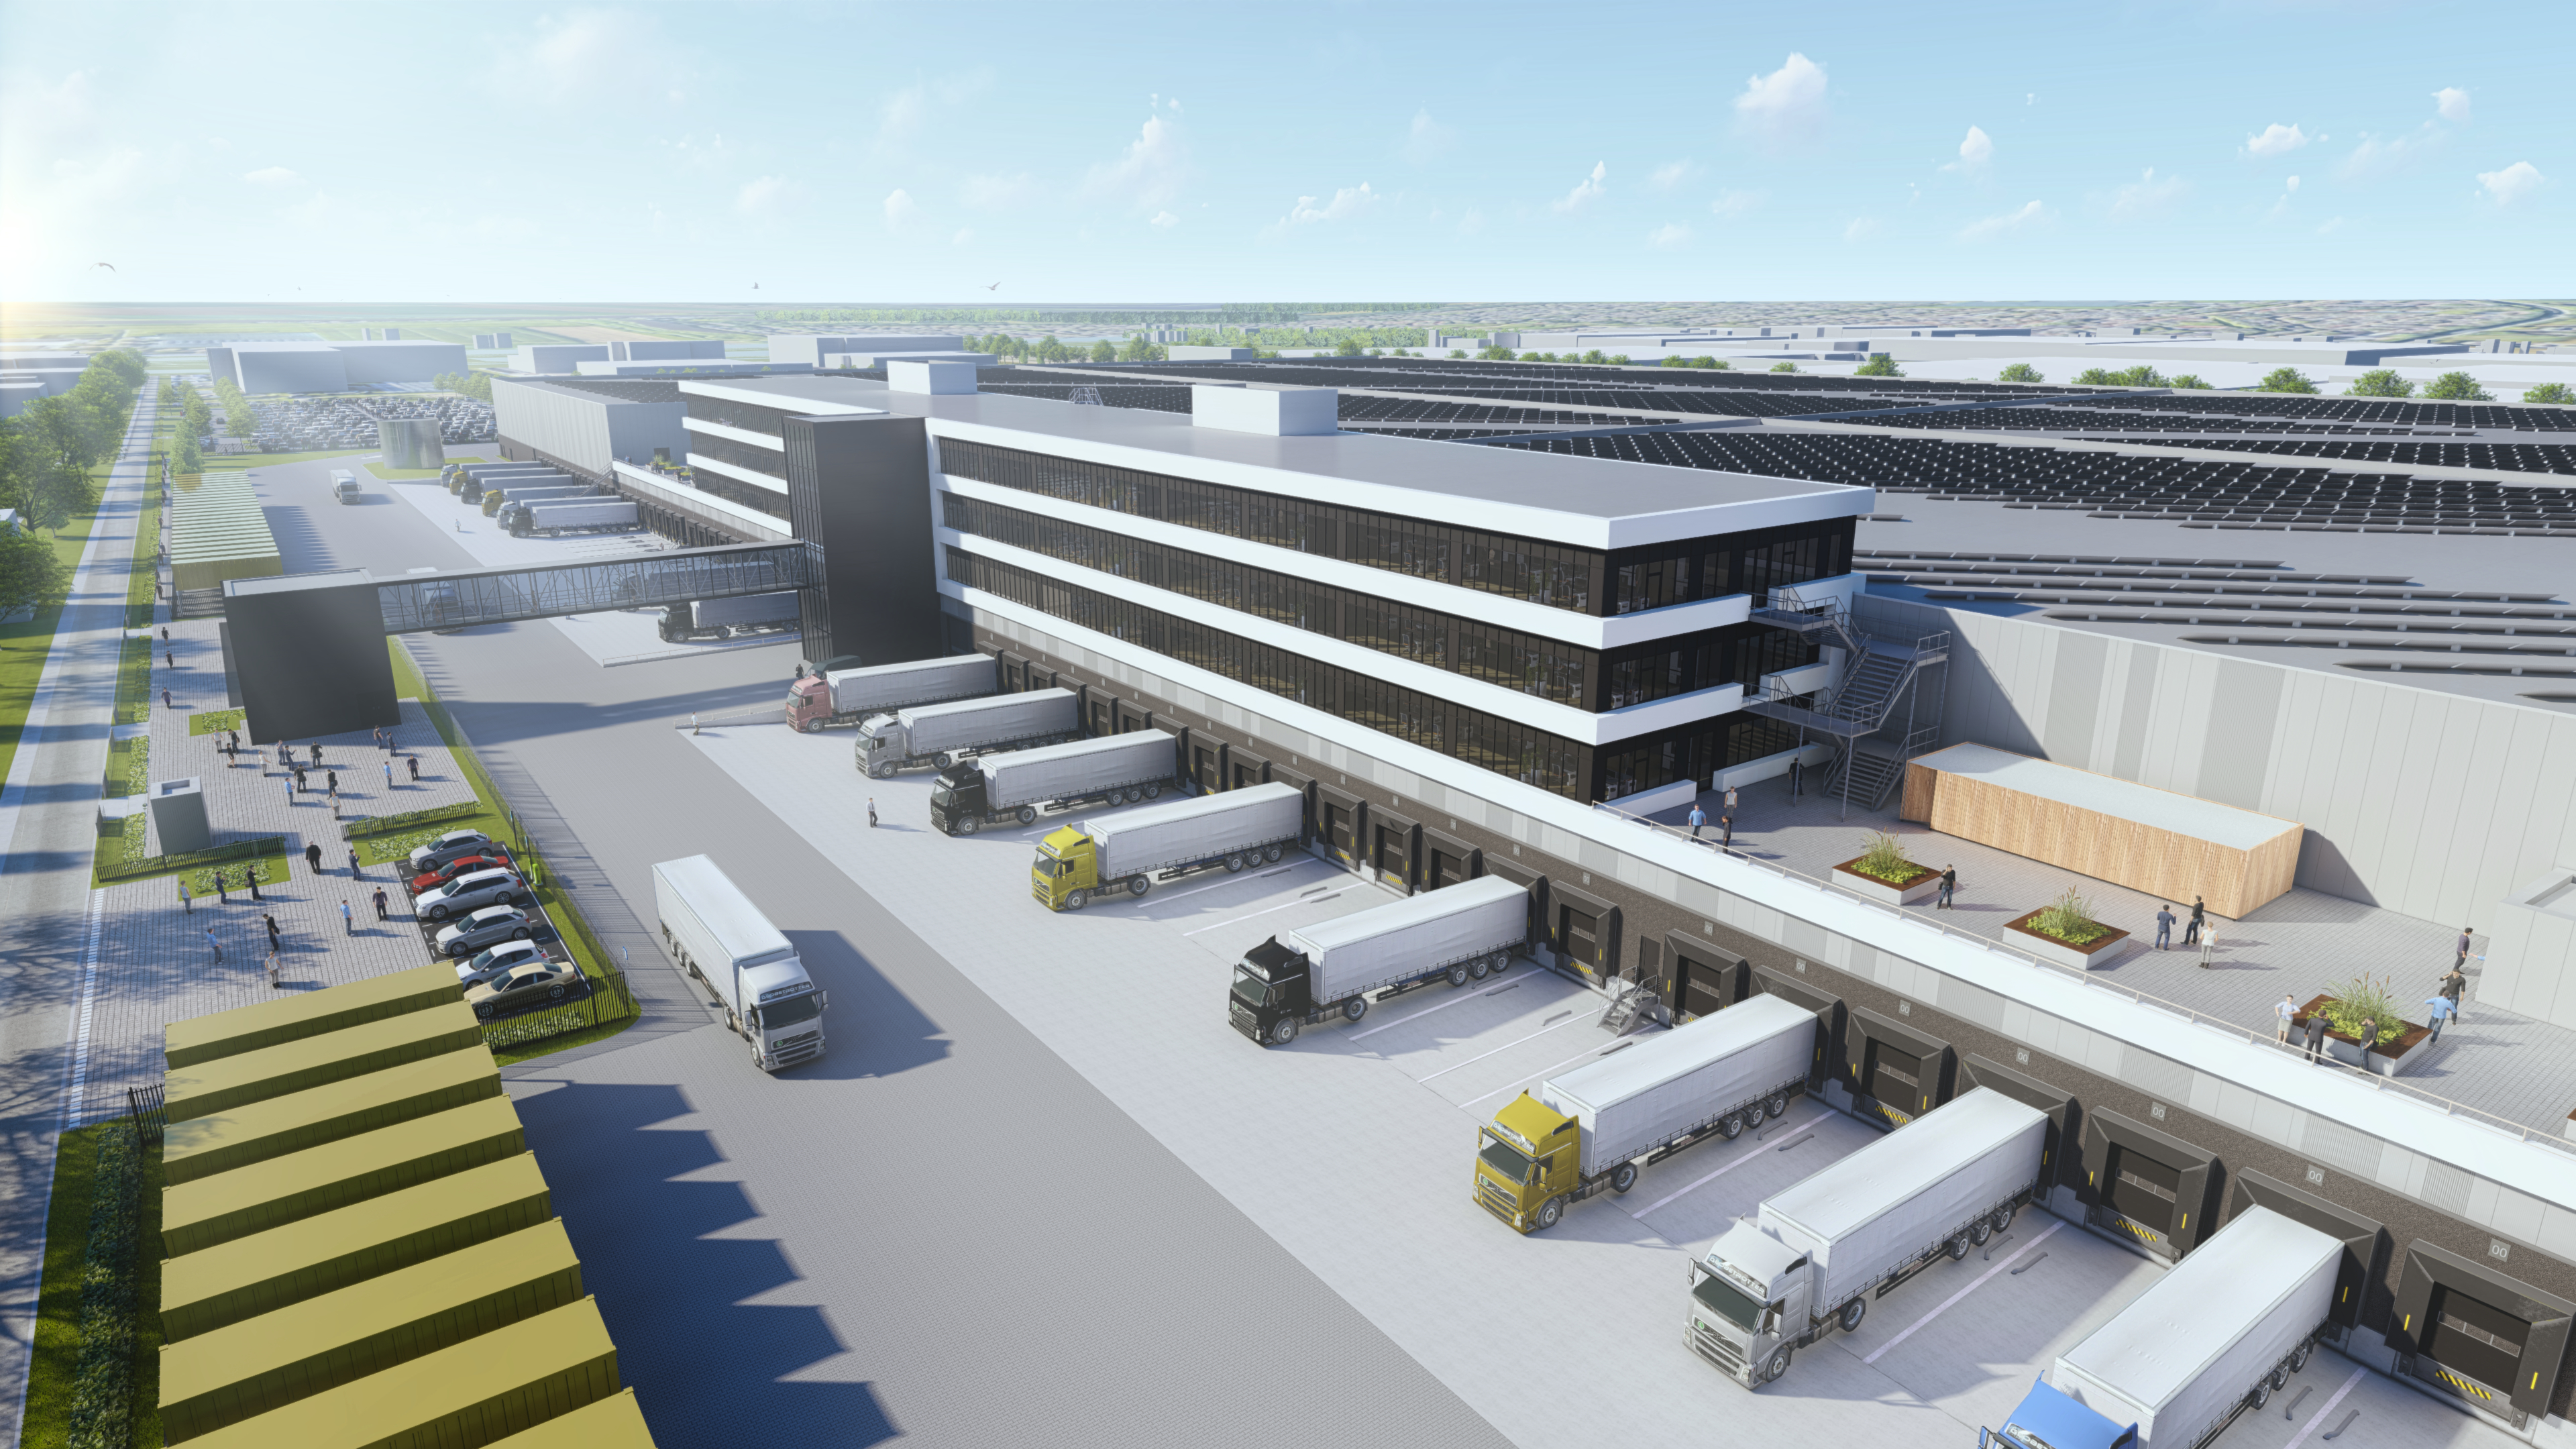 Zalando to build fulfillment center in the Netherlands